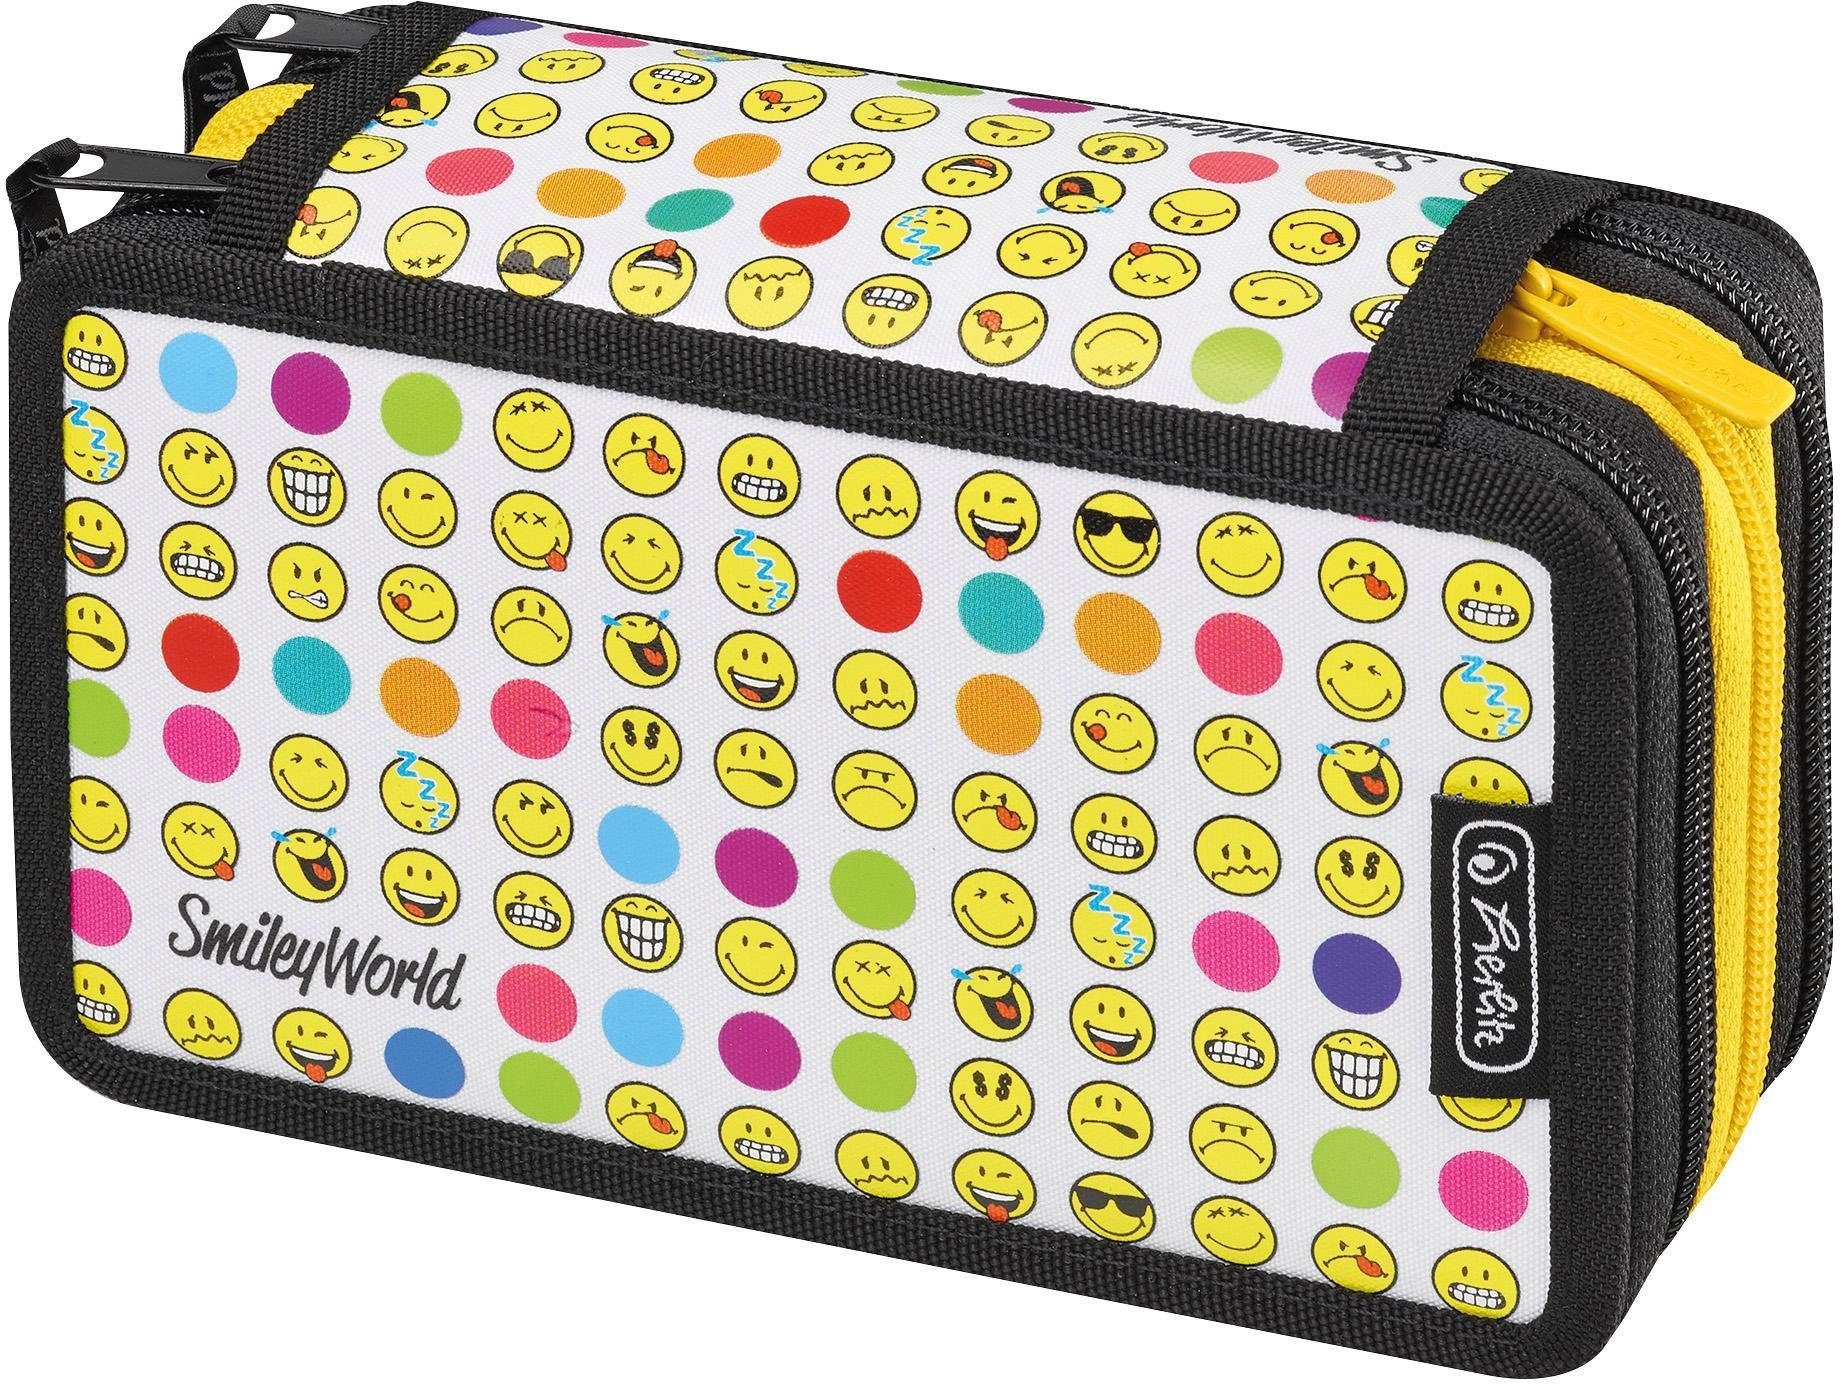 Herlitz etui met inhoud, 31-delig, »Triple Decker, Smiley World Rainbow Faces« - gratis ruilen op otto.nl